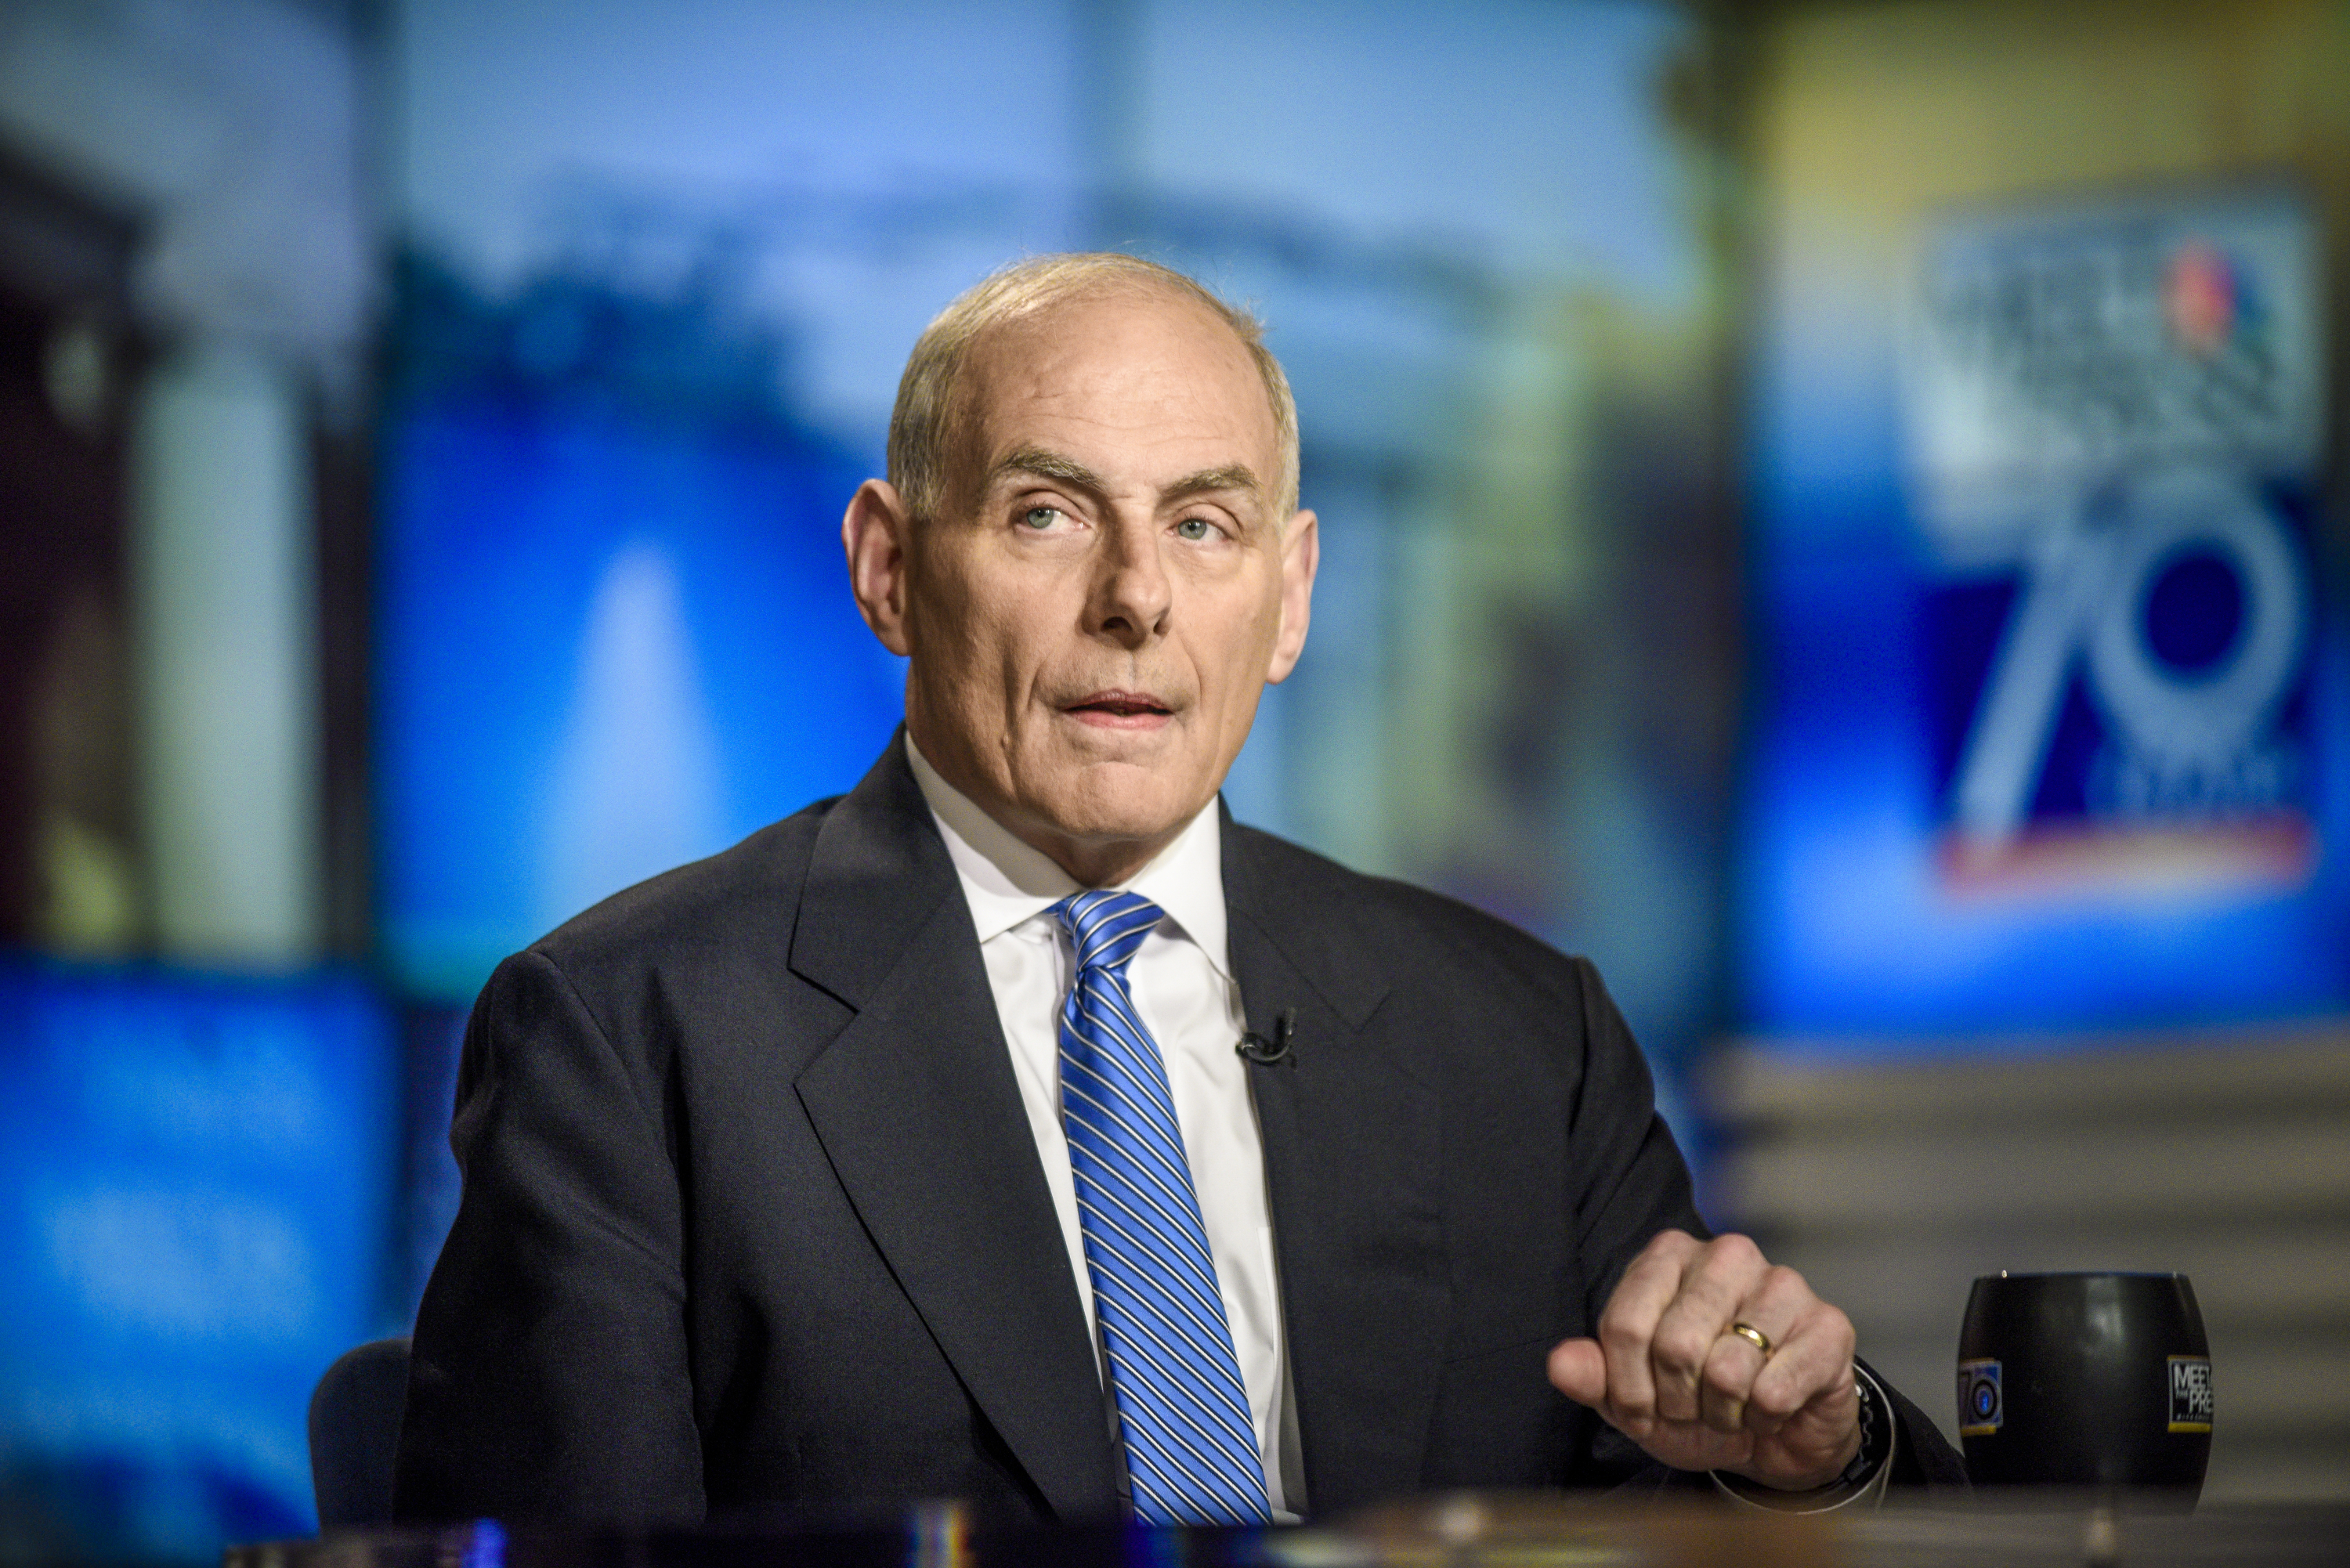 Homeland Security Secretary John Kelly on the set of 'Meet the Press' in Washington, April 15, 2017.